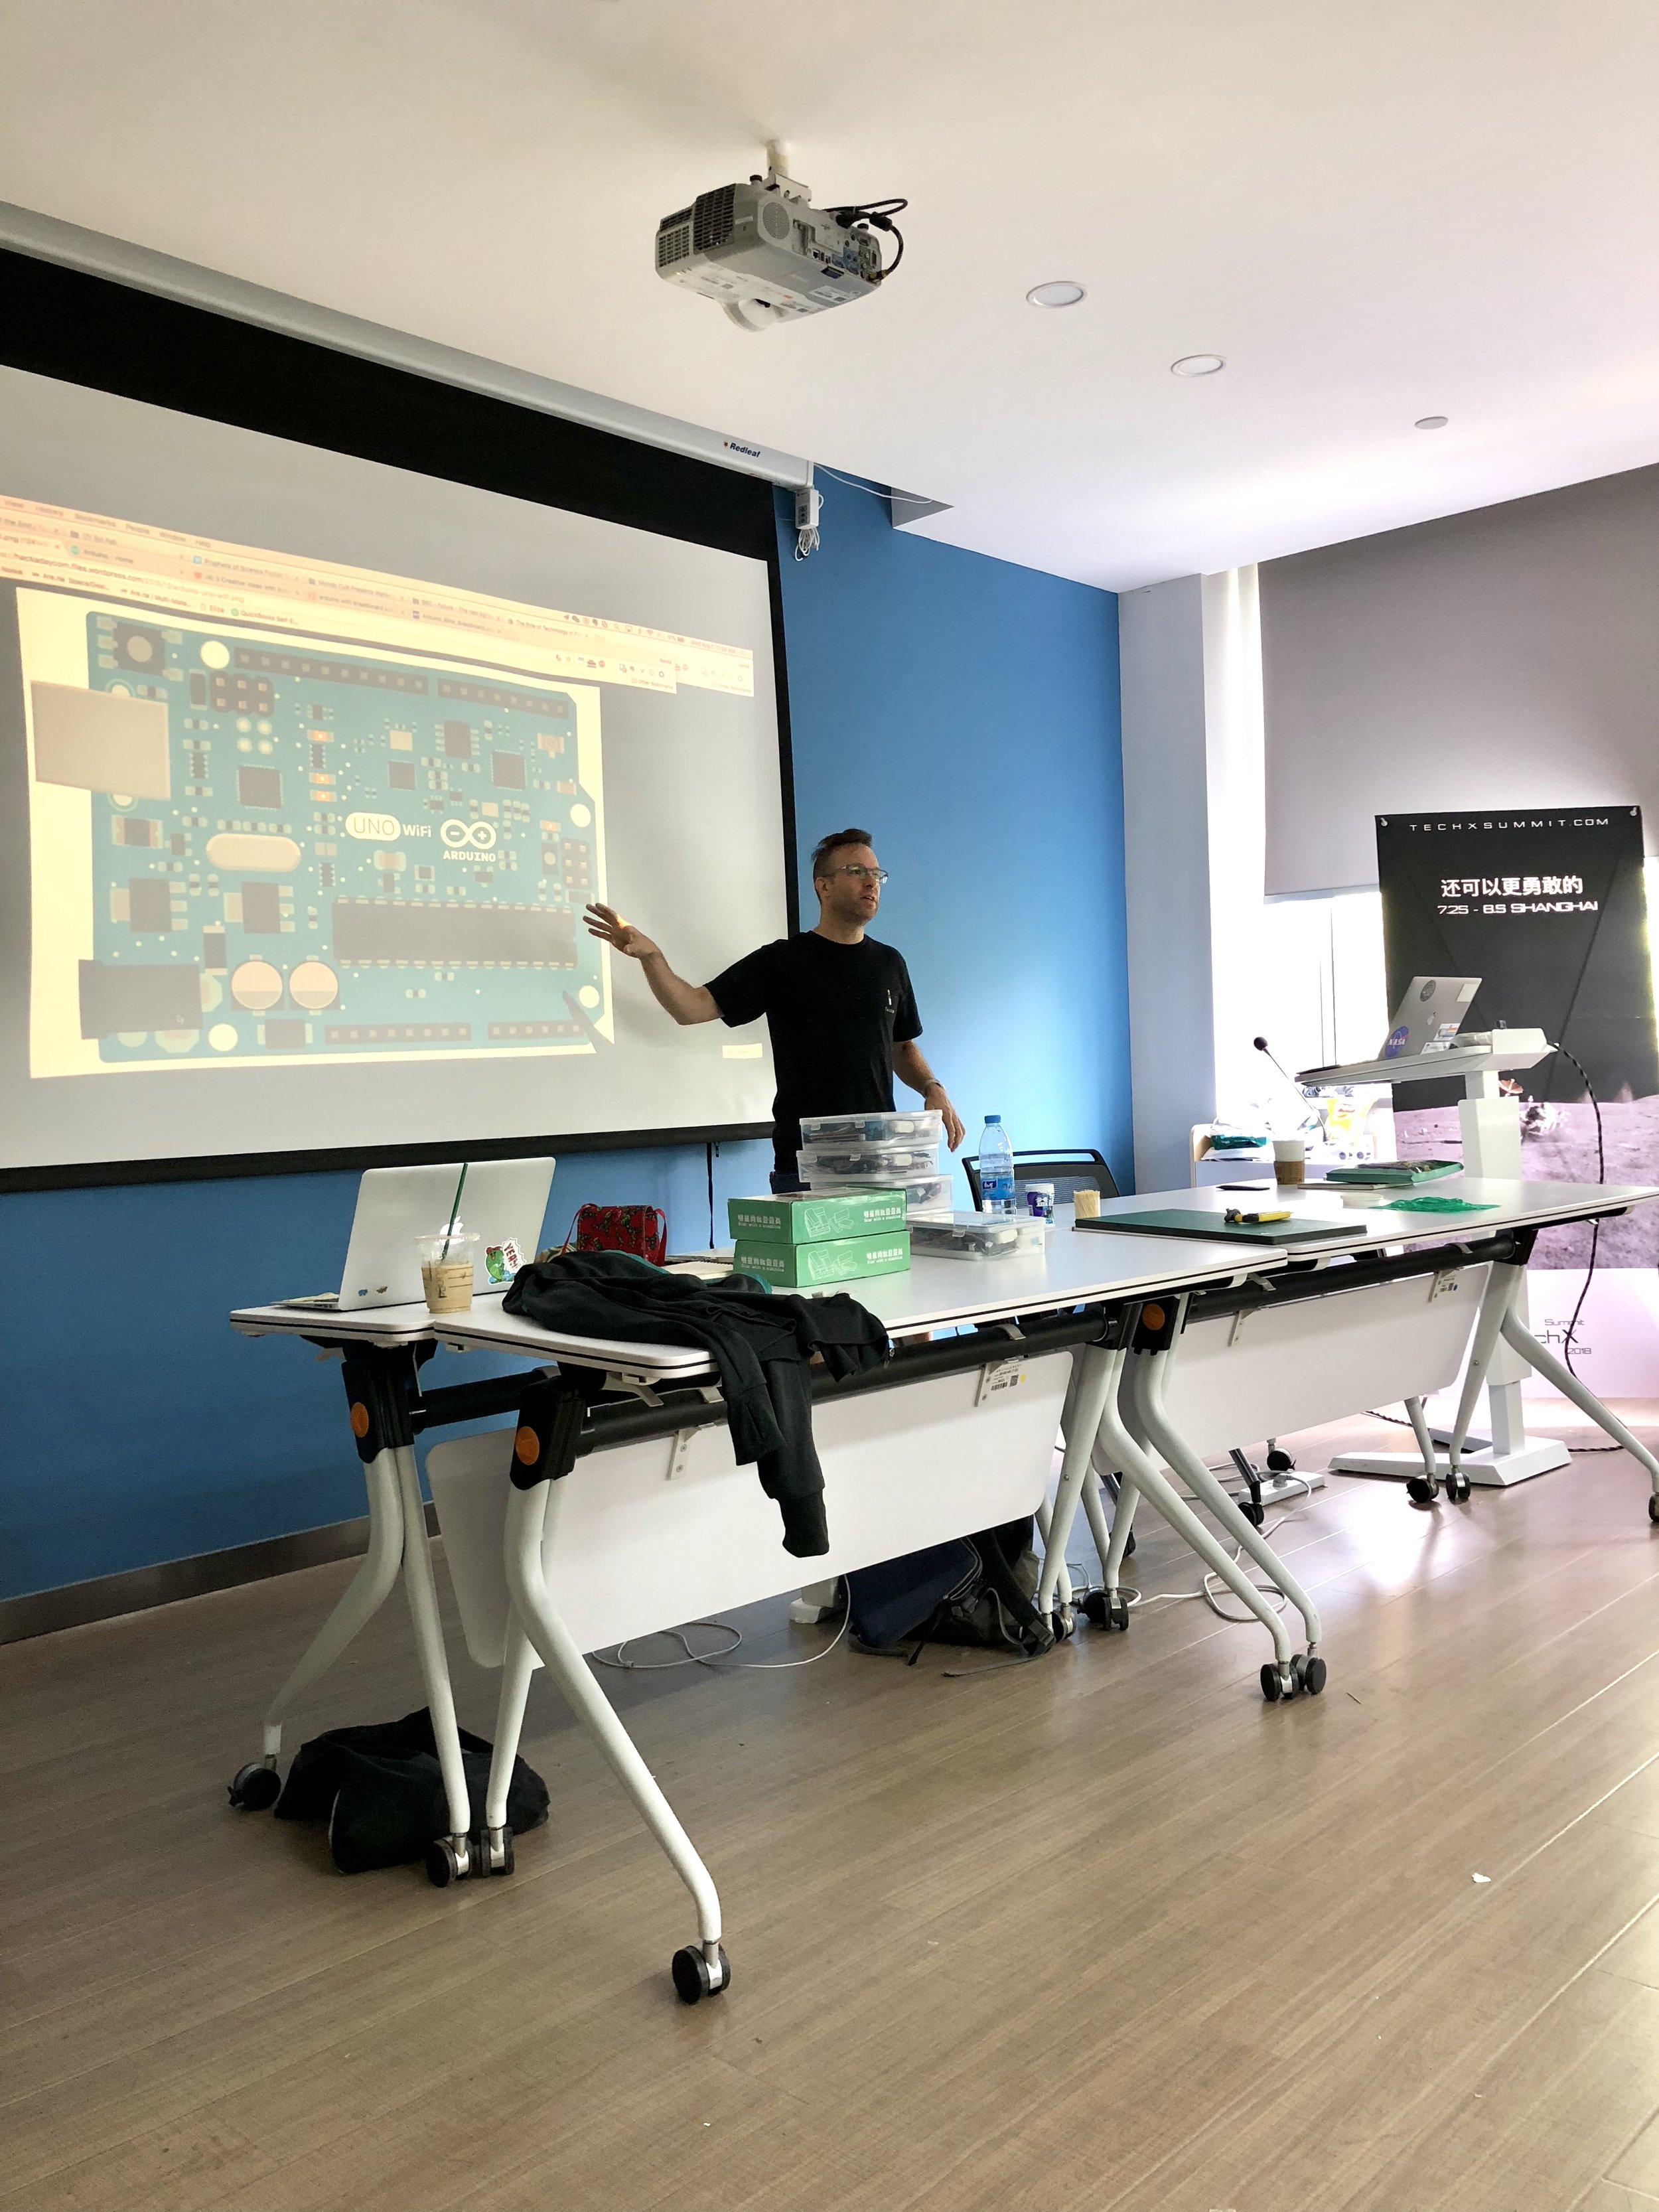 Sands teaching Introduction to Arduino